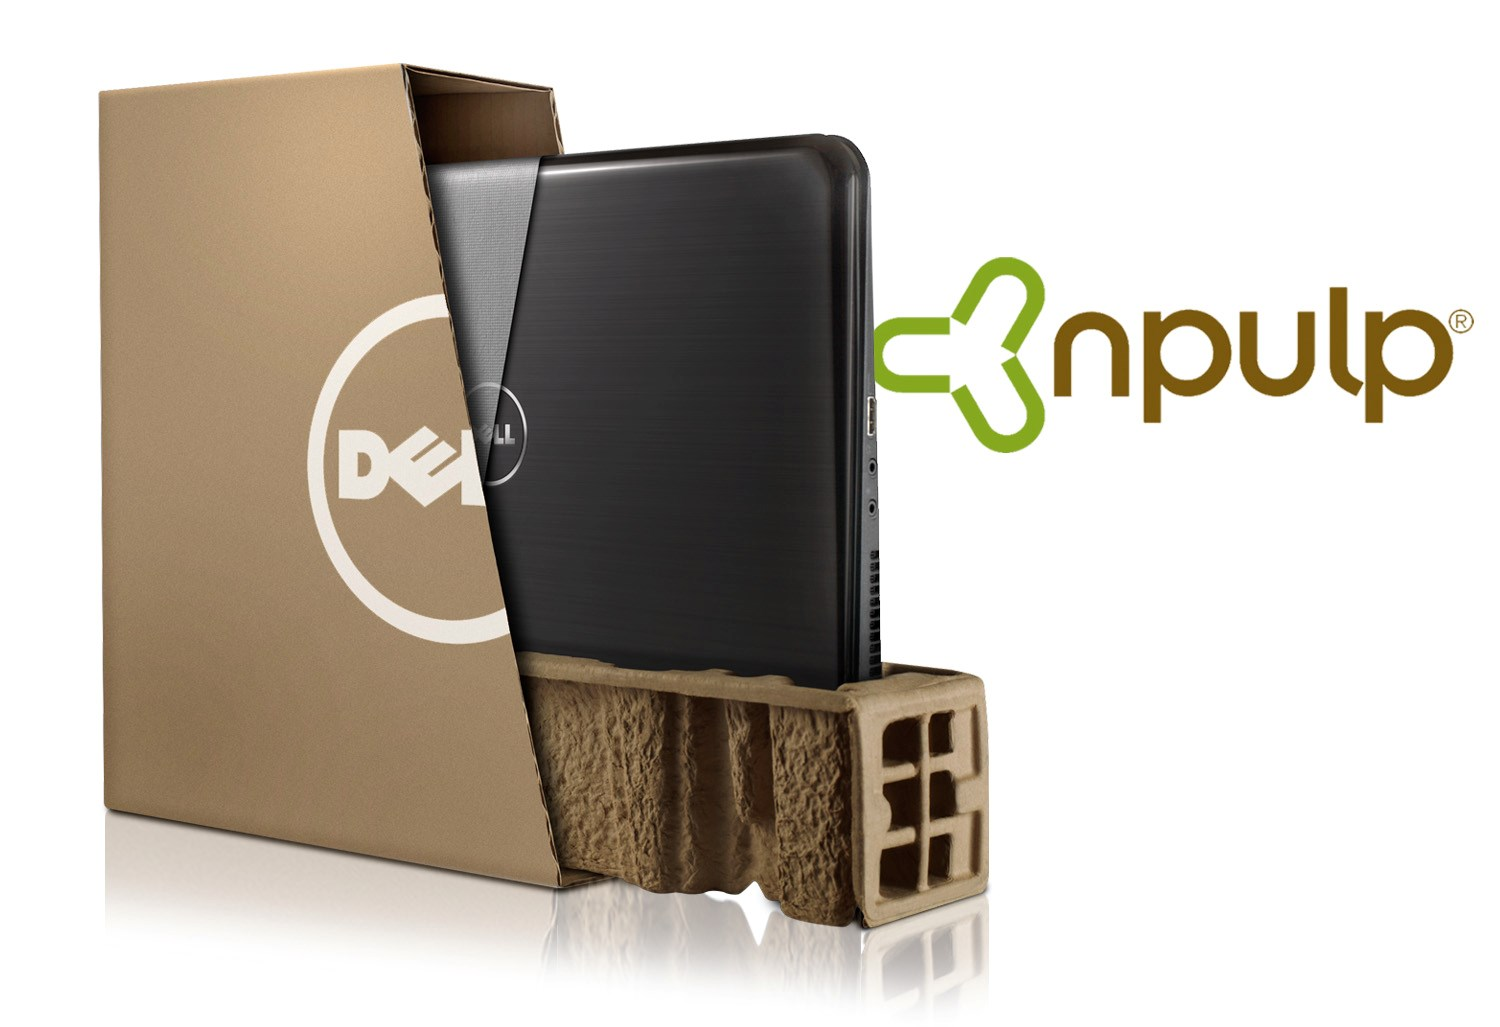 Dell's Wheat Straw Sustainable Packaging